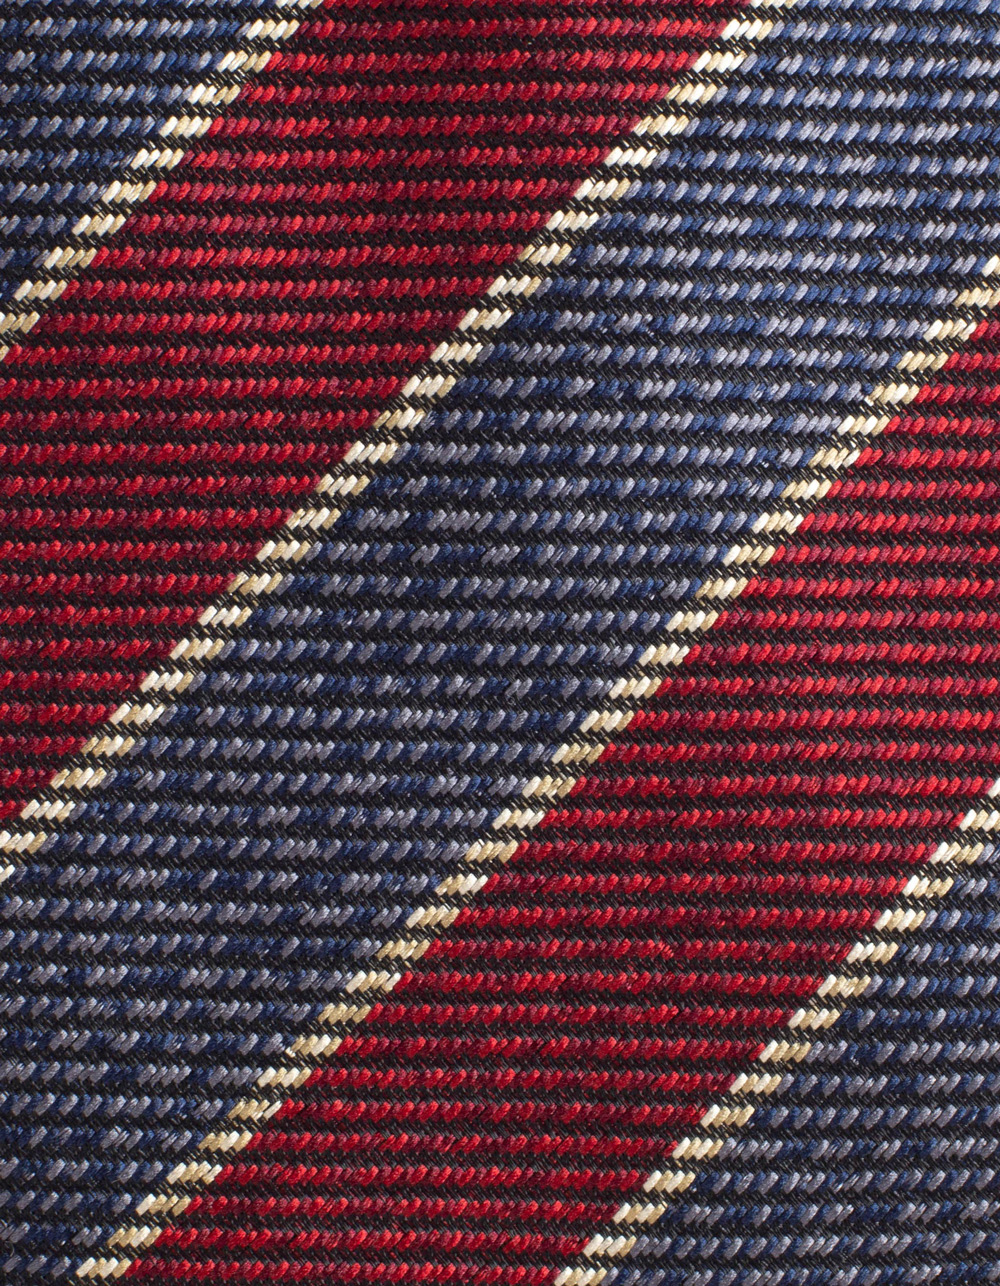 Diagonal striped tie in Navy and Bordo - Backside